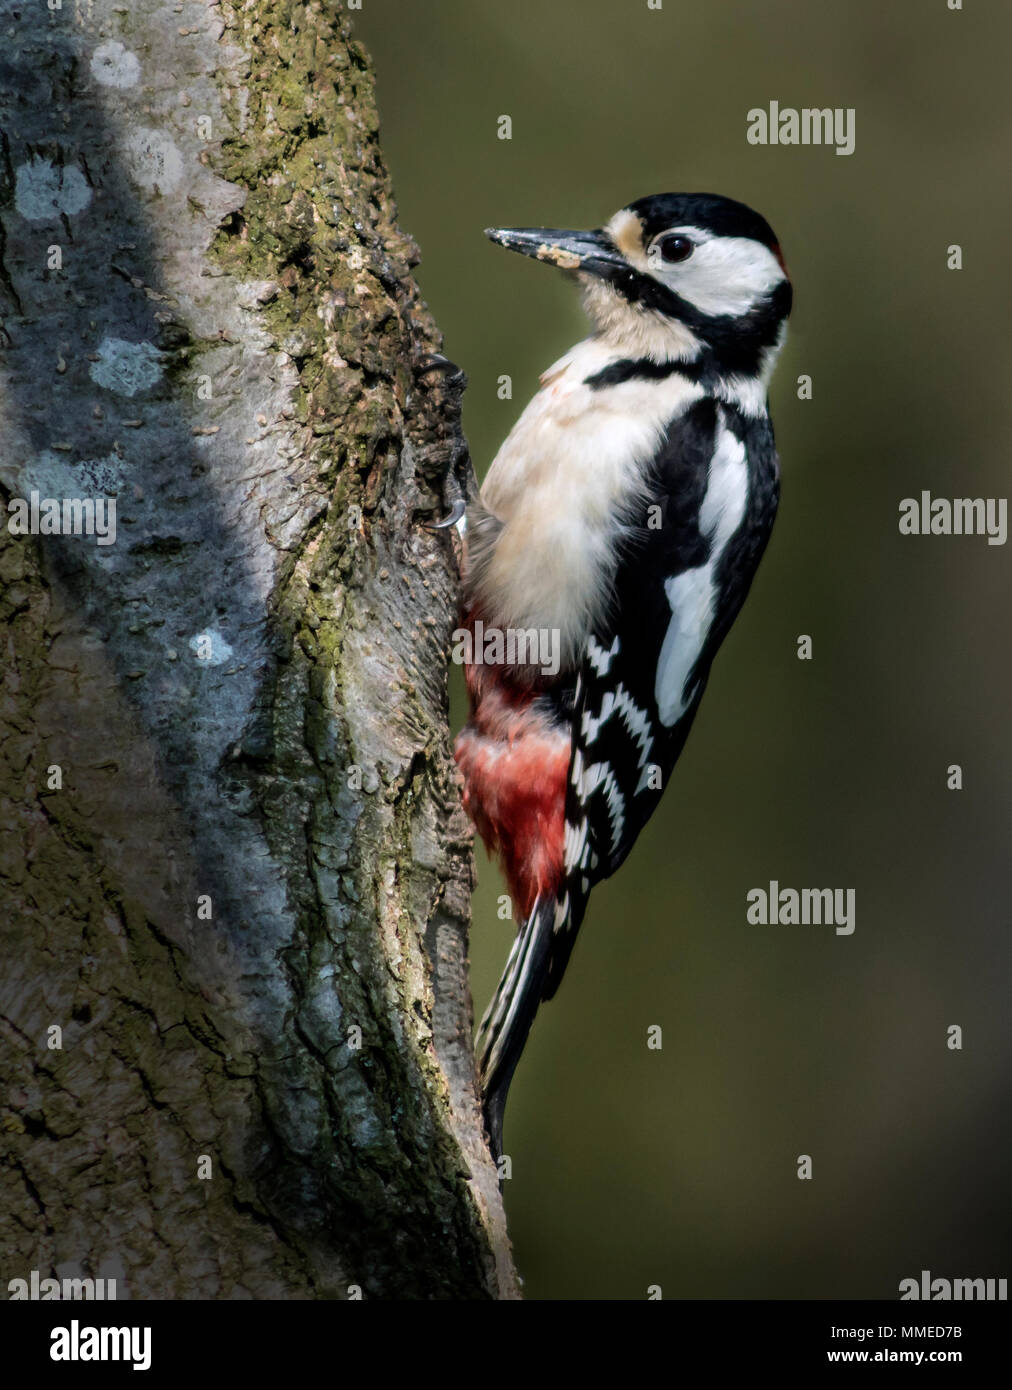 Greater Spotted Woodpecker (Dendrocopos major) Stock Photo